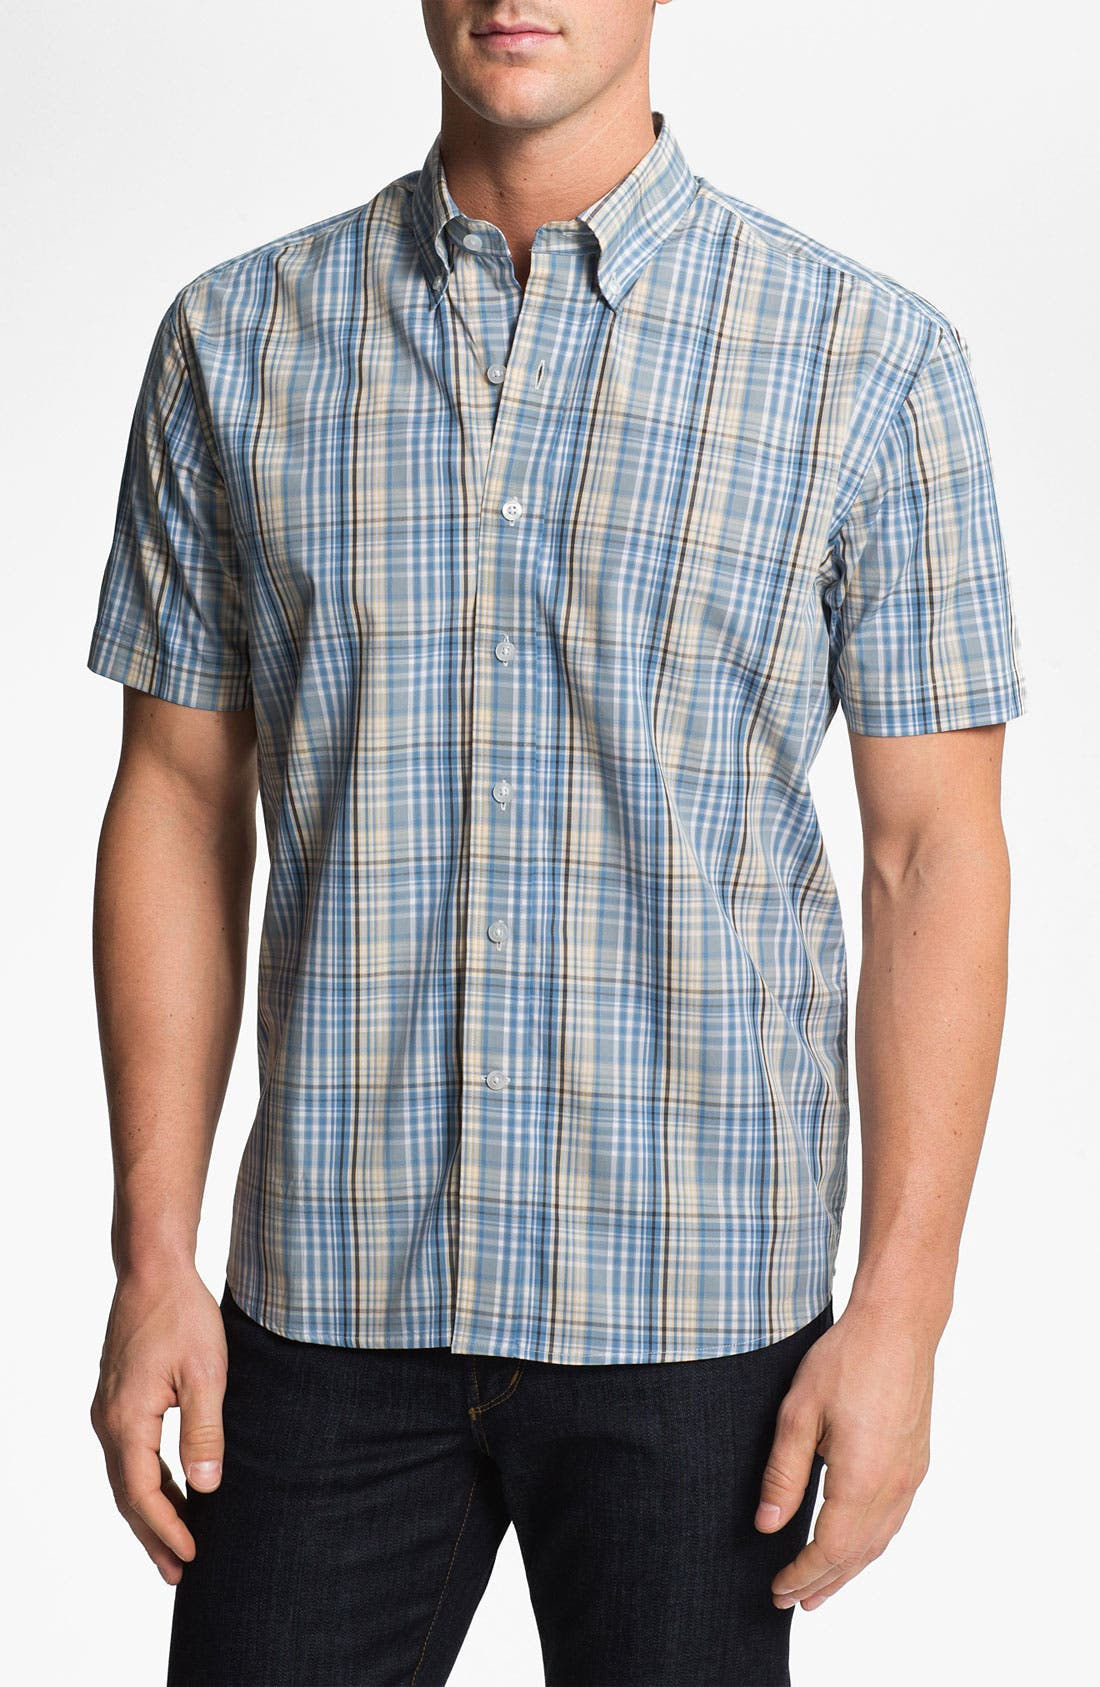 Main Image - Cutter & Buck 'Leary' Plaid Sport Shirt